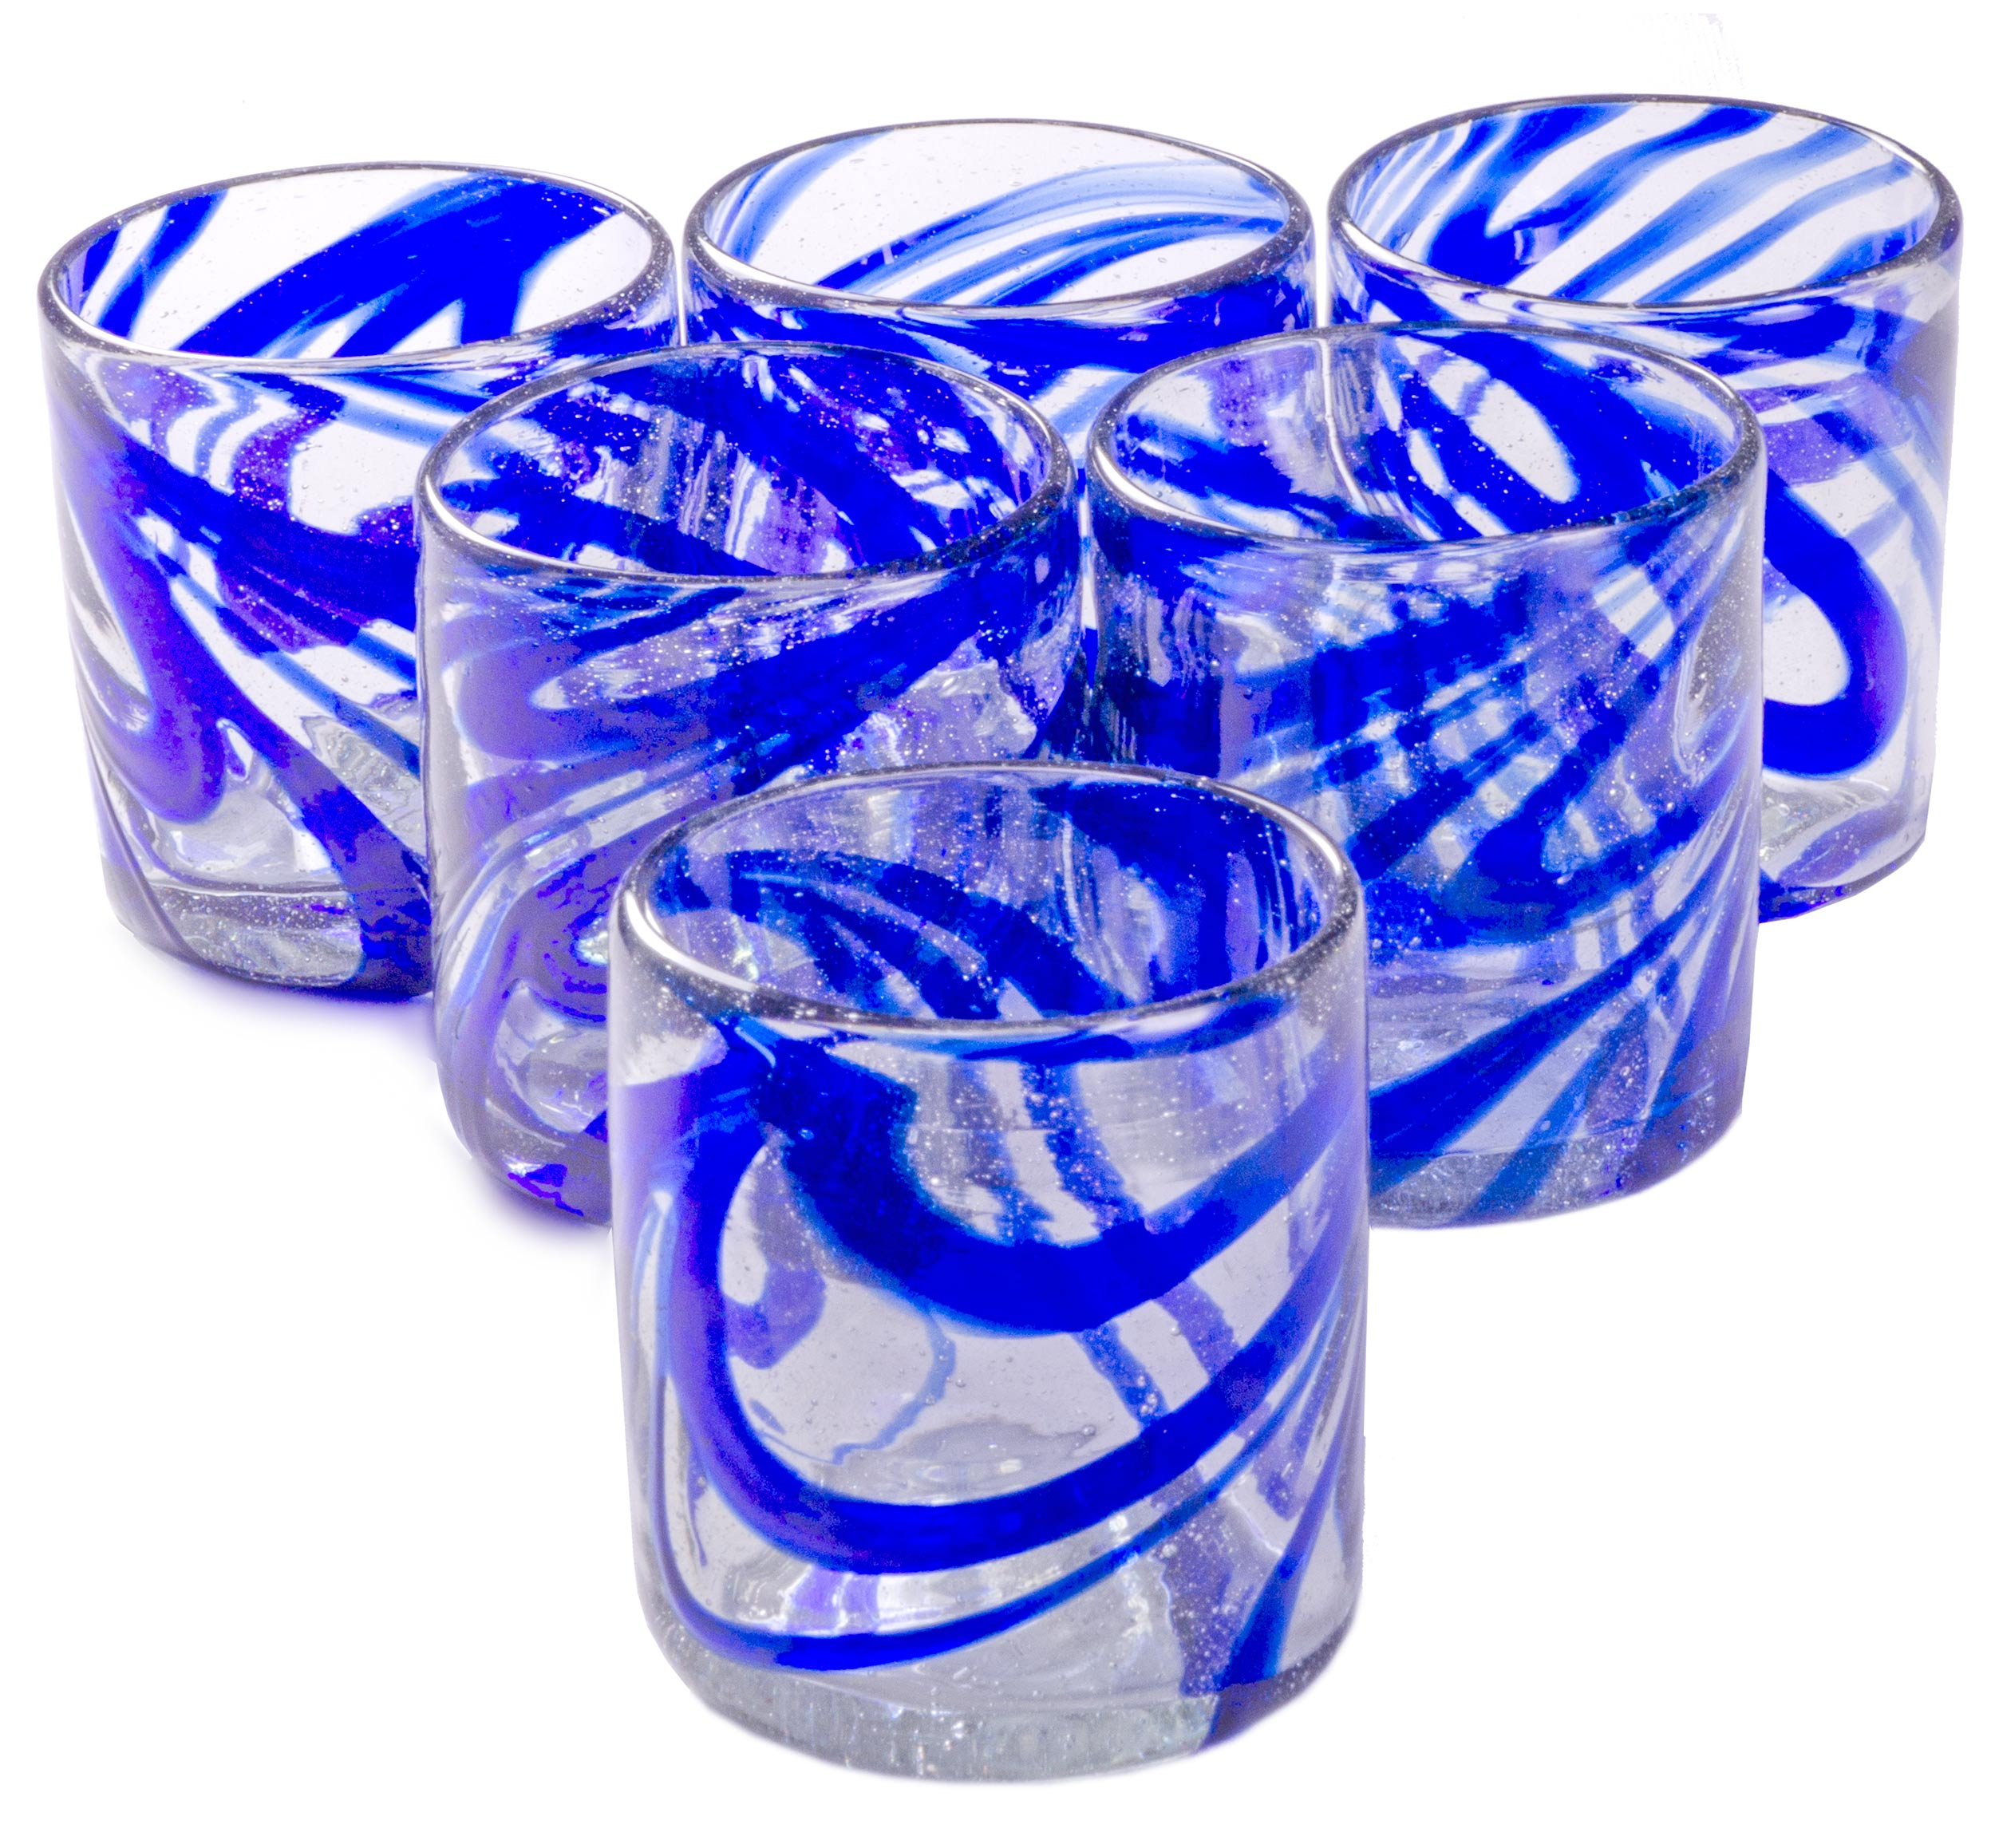 Orion Blue Swirl 12 oz All Purpose - Set of 6 - Orion's Table Mexican Glassware